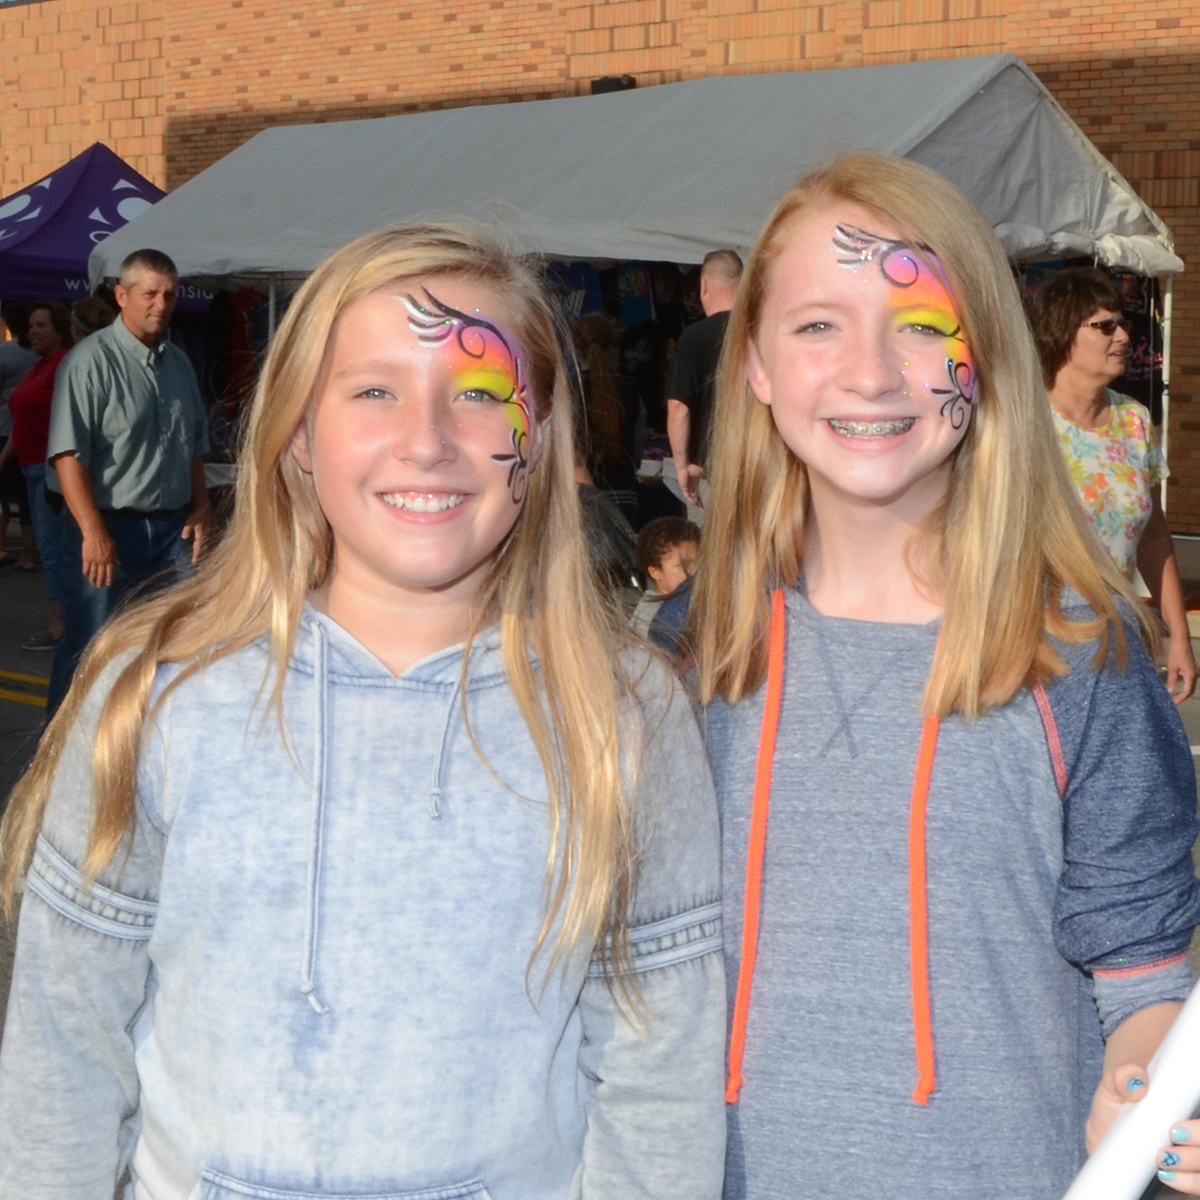 Festival Goers with Faces Painted